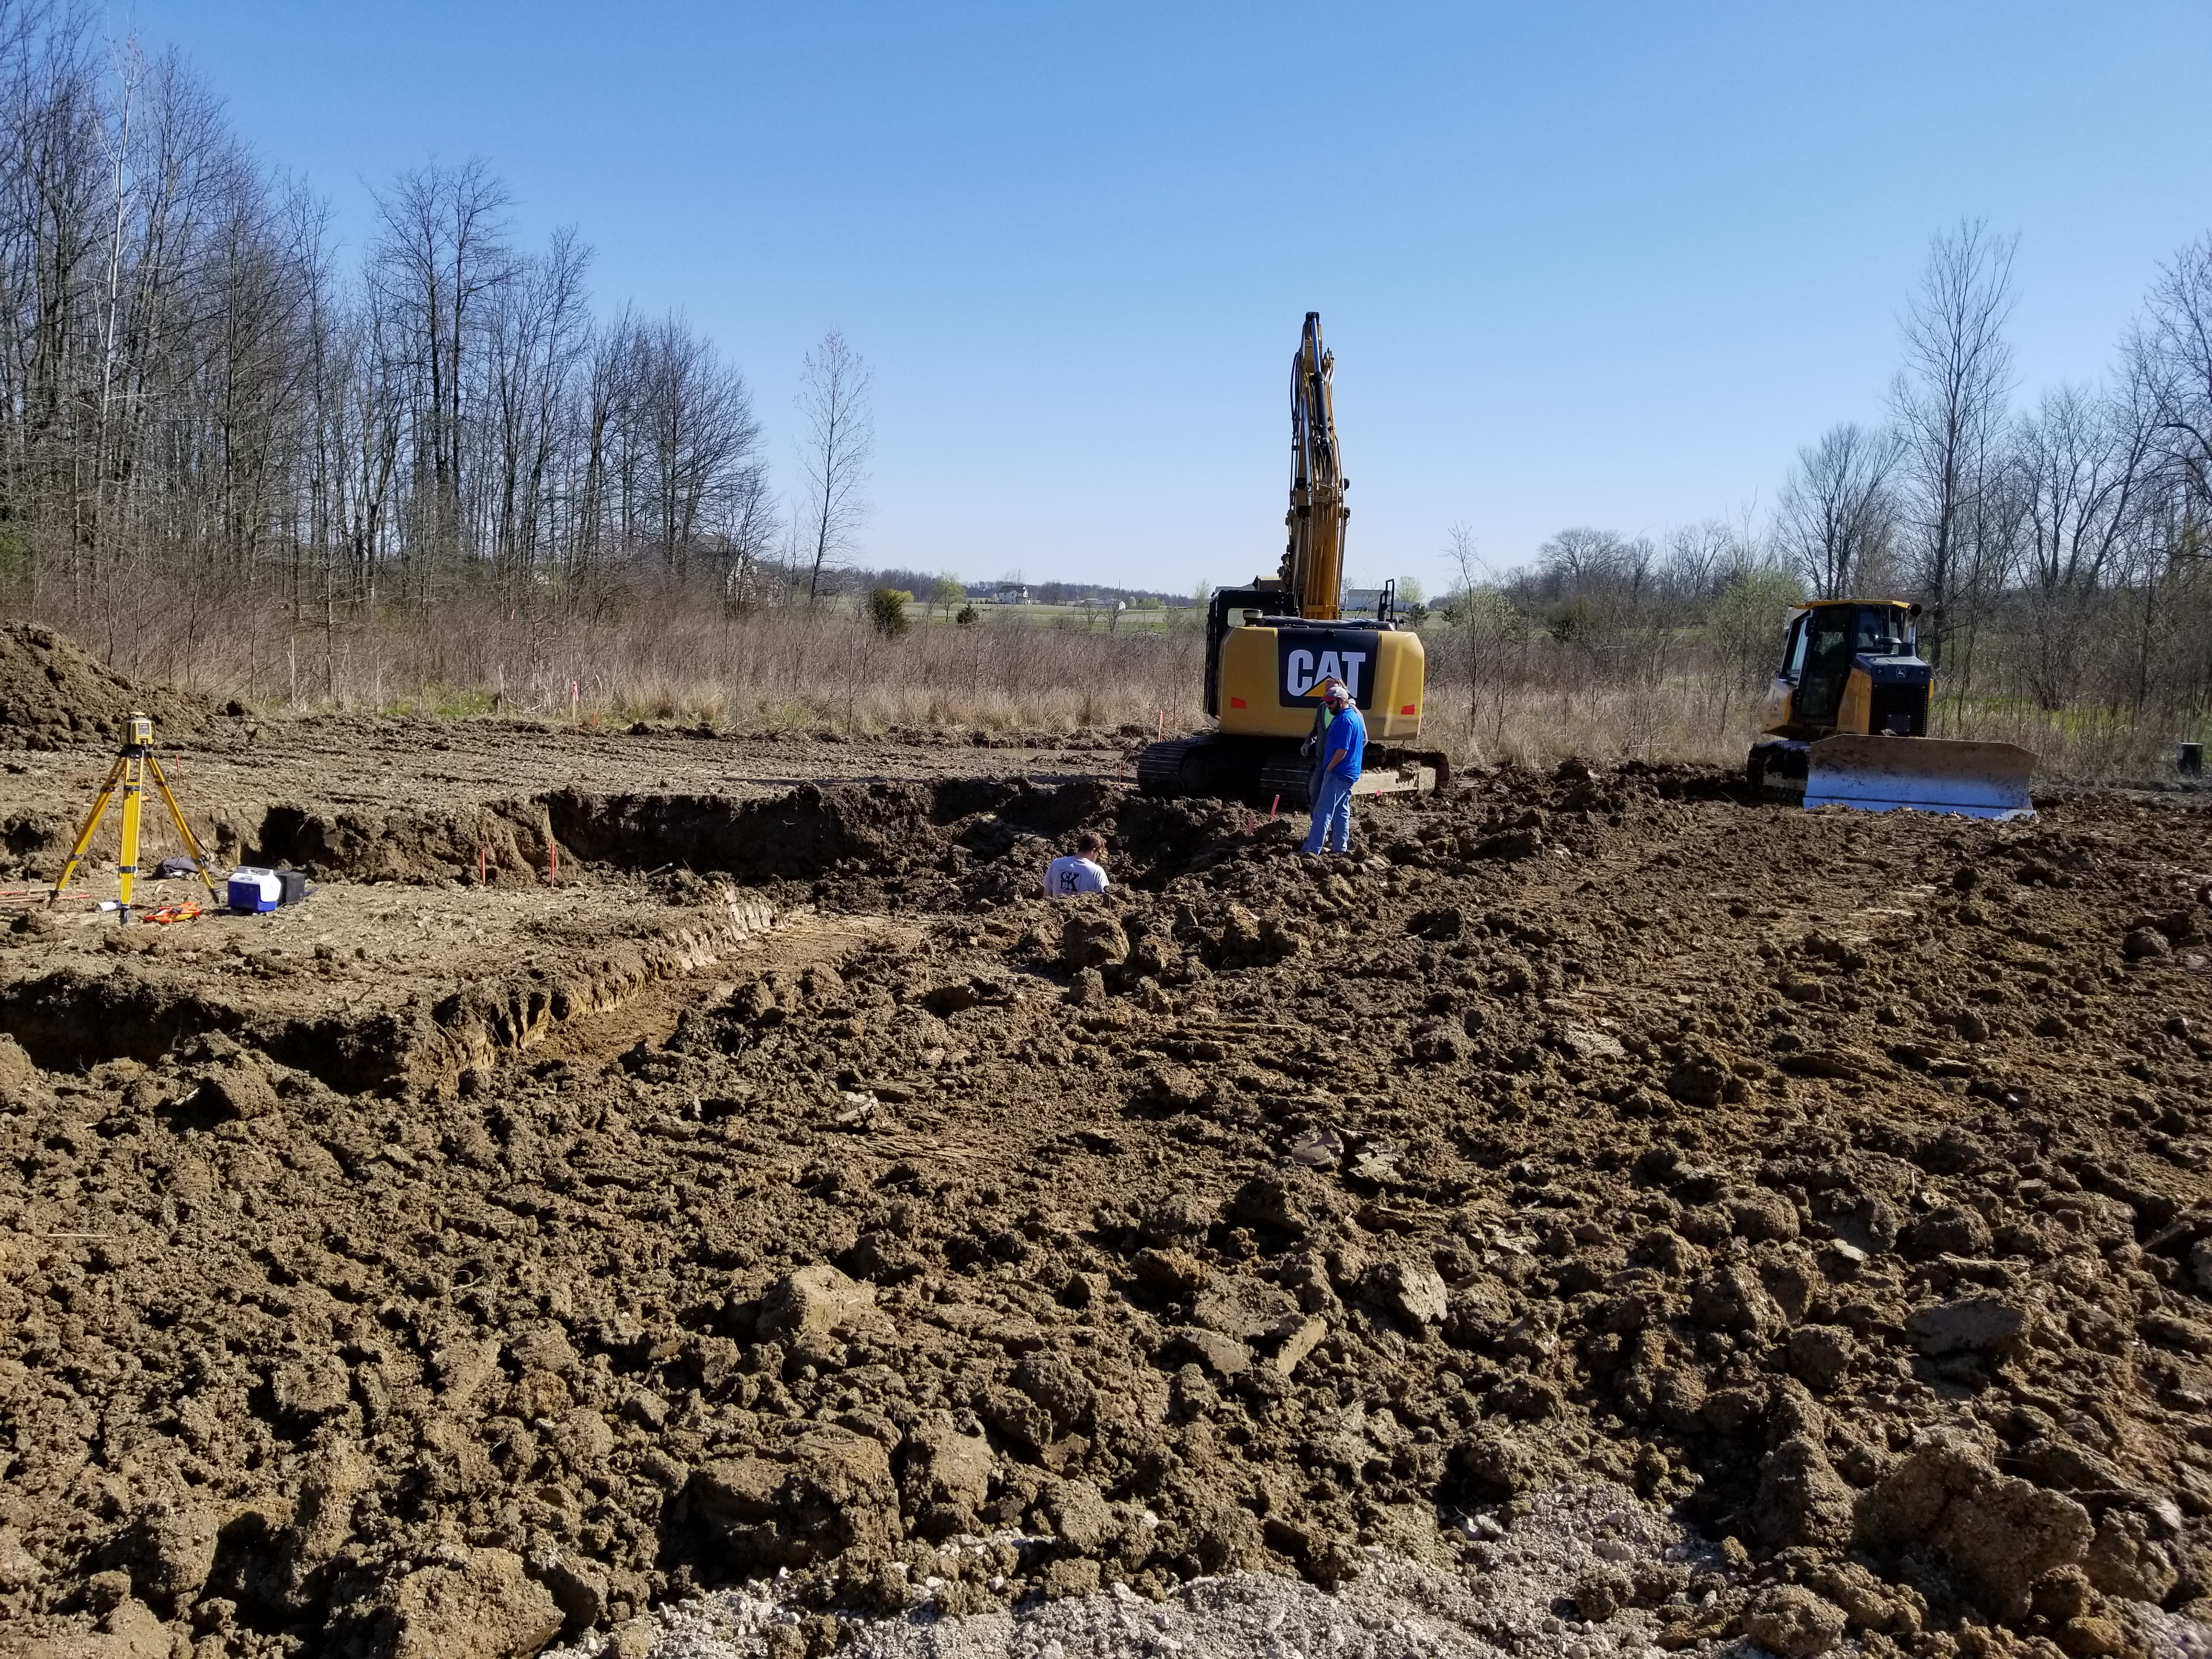 Field Manager touching base with the excavation contractor